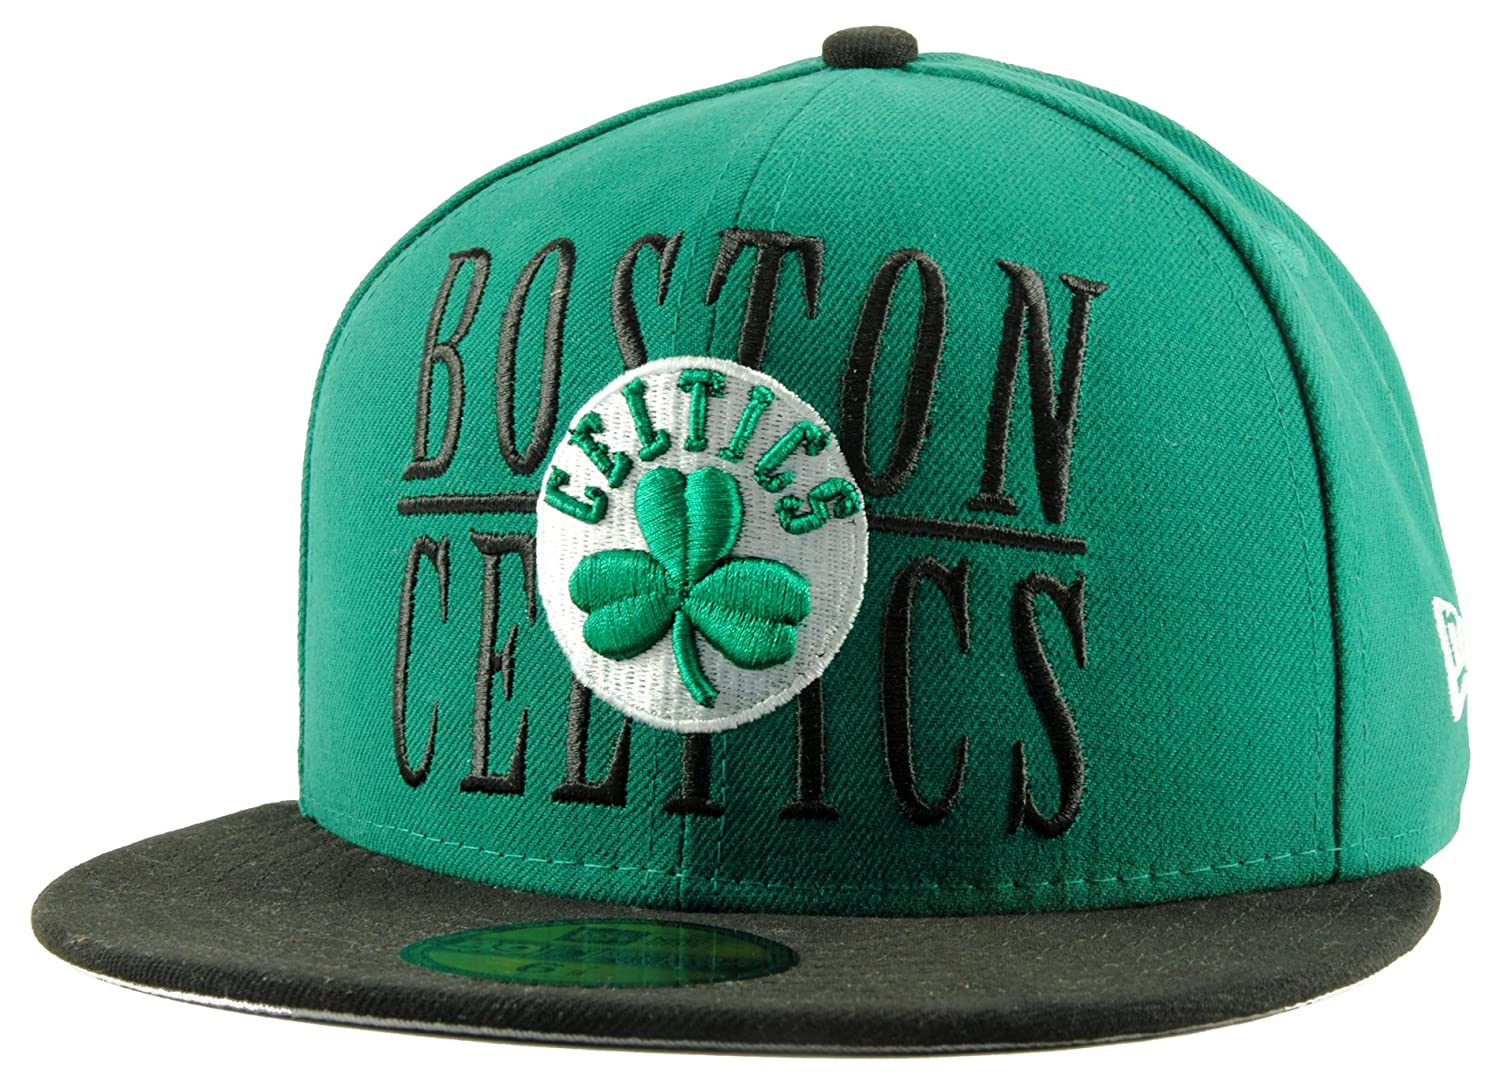 b4d5813708 Boston Celtics NBA Green / Black Step Over New Era 59Fifty Fitted Baseball  Cap Size 7: Amazon.co.uk: Clothing